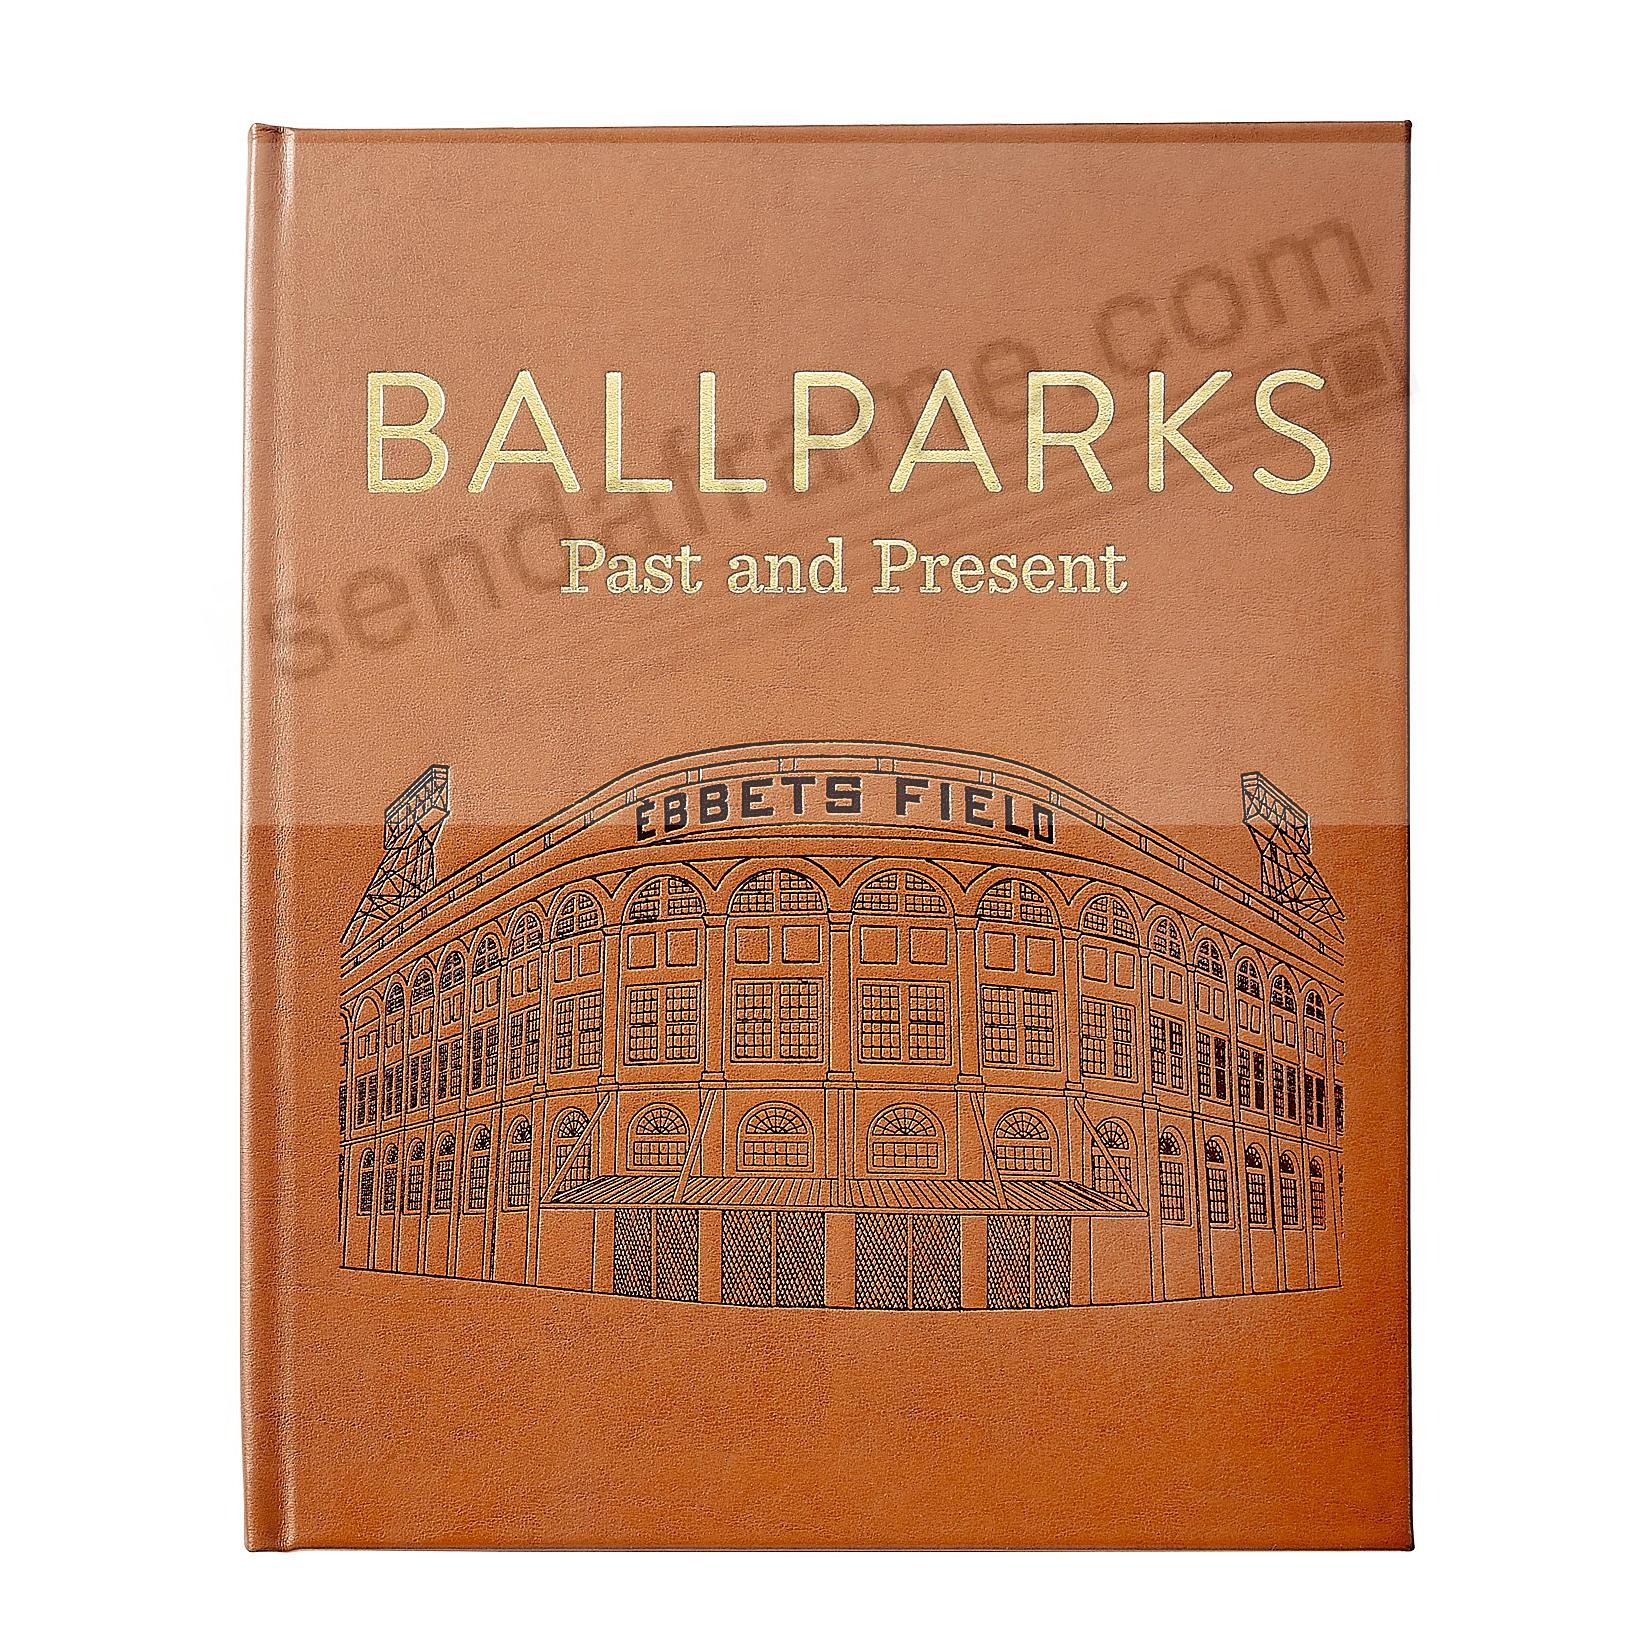 BALLPARKS PAST AND PRESENT In Hand-Tooled Luxe Leather